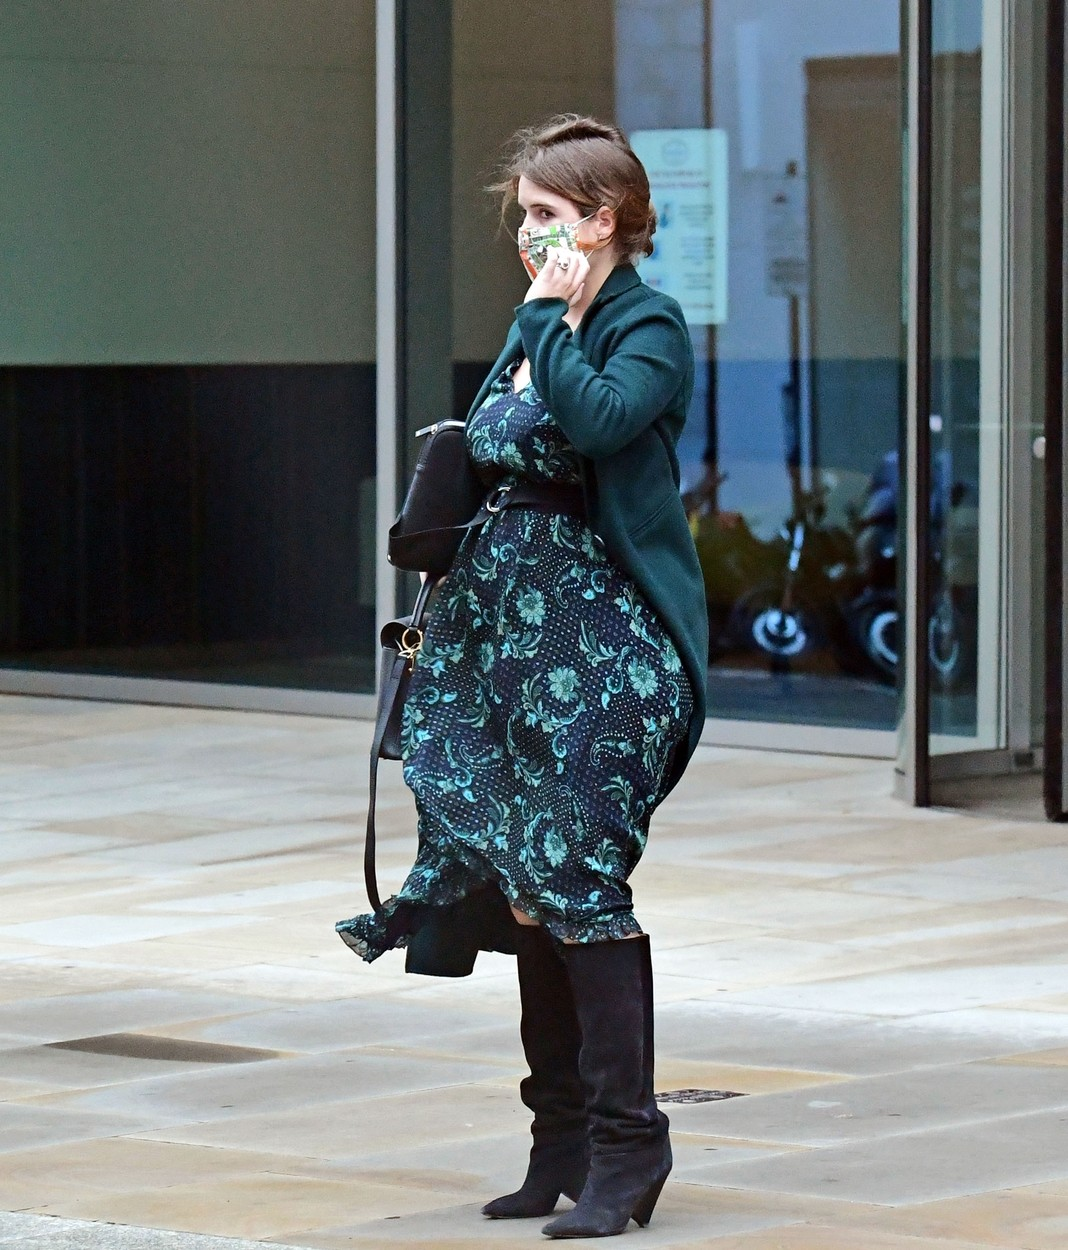 London, UNITED KINGDOM  - *PREMIUM-EXCLUSIVE*  - MUST CALL FOR PRICING BEFORE USAGE   - Princess Eugenie seen showcasing her growing baby bump in the capital as she battles with the windy conditions.   The Princess was seen looking elegant and fashionable as she stepped out in a matching green dress and coat in Mayfair London.  *UK Clients - Pictures Containing Children Please Pixelate Face Prior To Publication*,Image: 560889792, License: Rights-managed, Restrictions: , Model Release: no, Credit line: BACKGRID / Backgrid UK / Profimedia